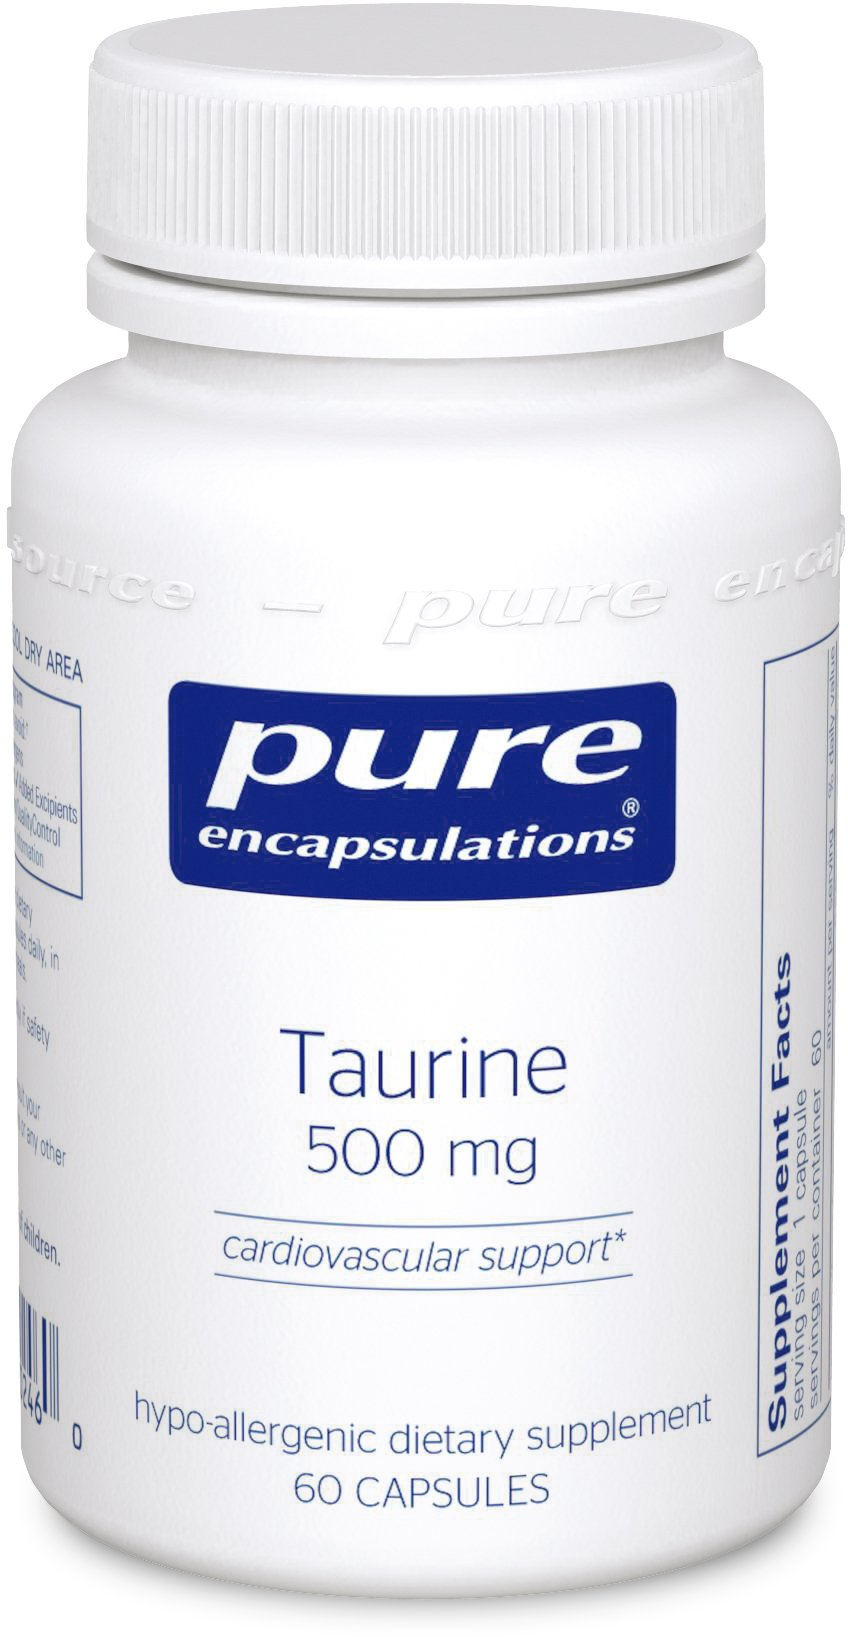 Pure Encapsulations - Taurine 500 mg - Hypoallergenic Supplement to Support Brain, Heart, Gallbladder, Eyes, and Vascular System* - 60 Capsules